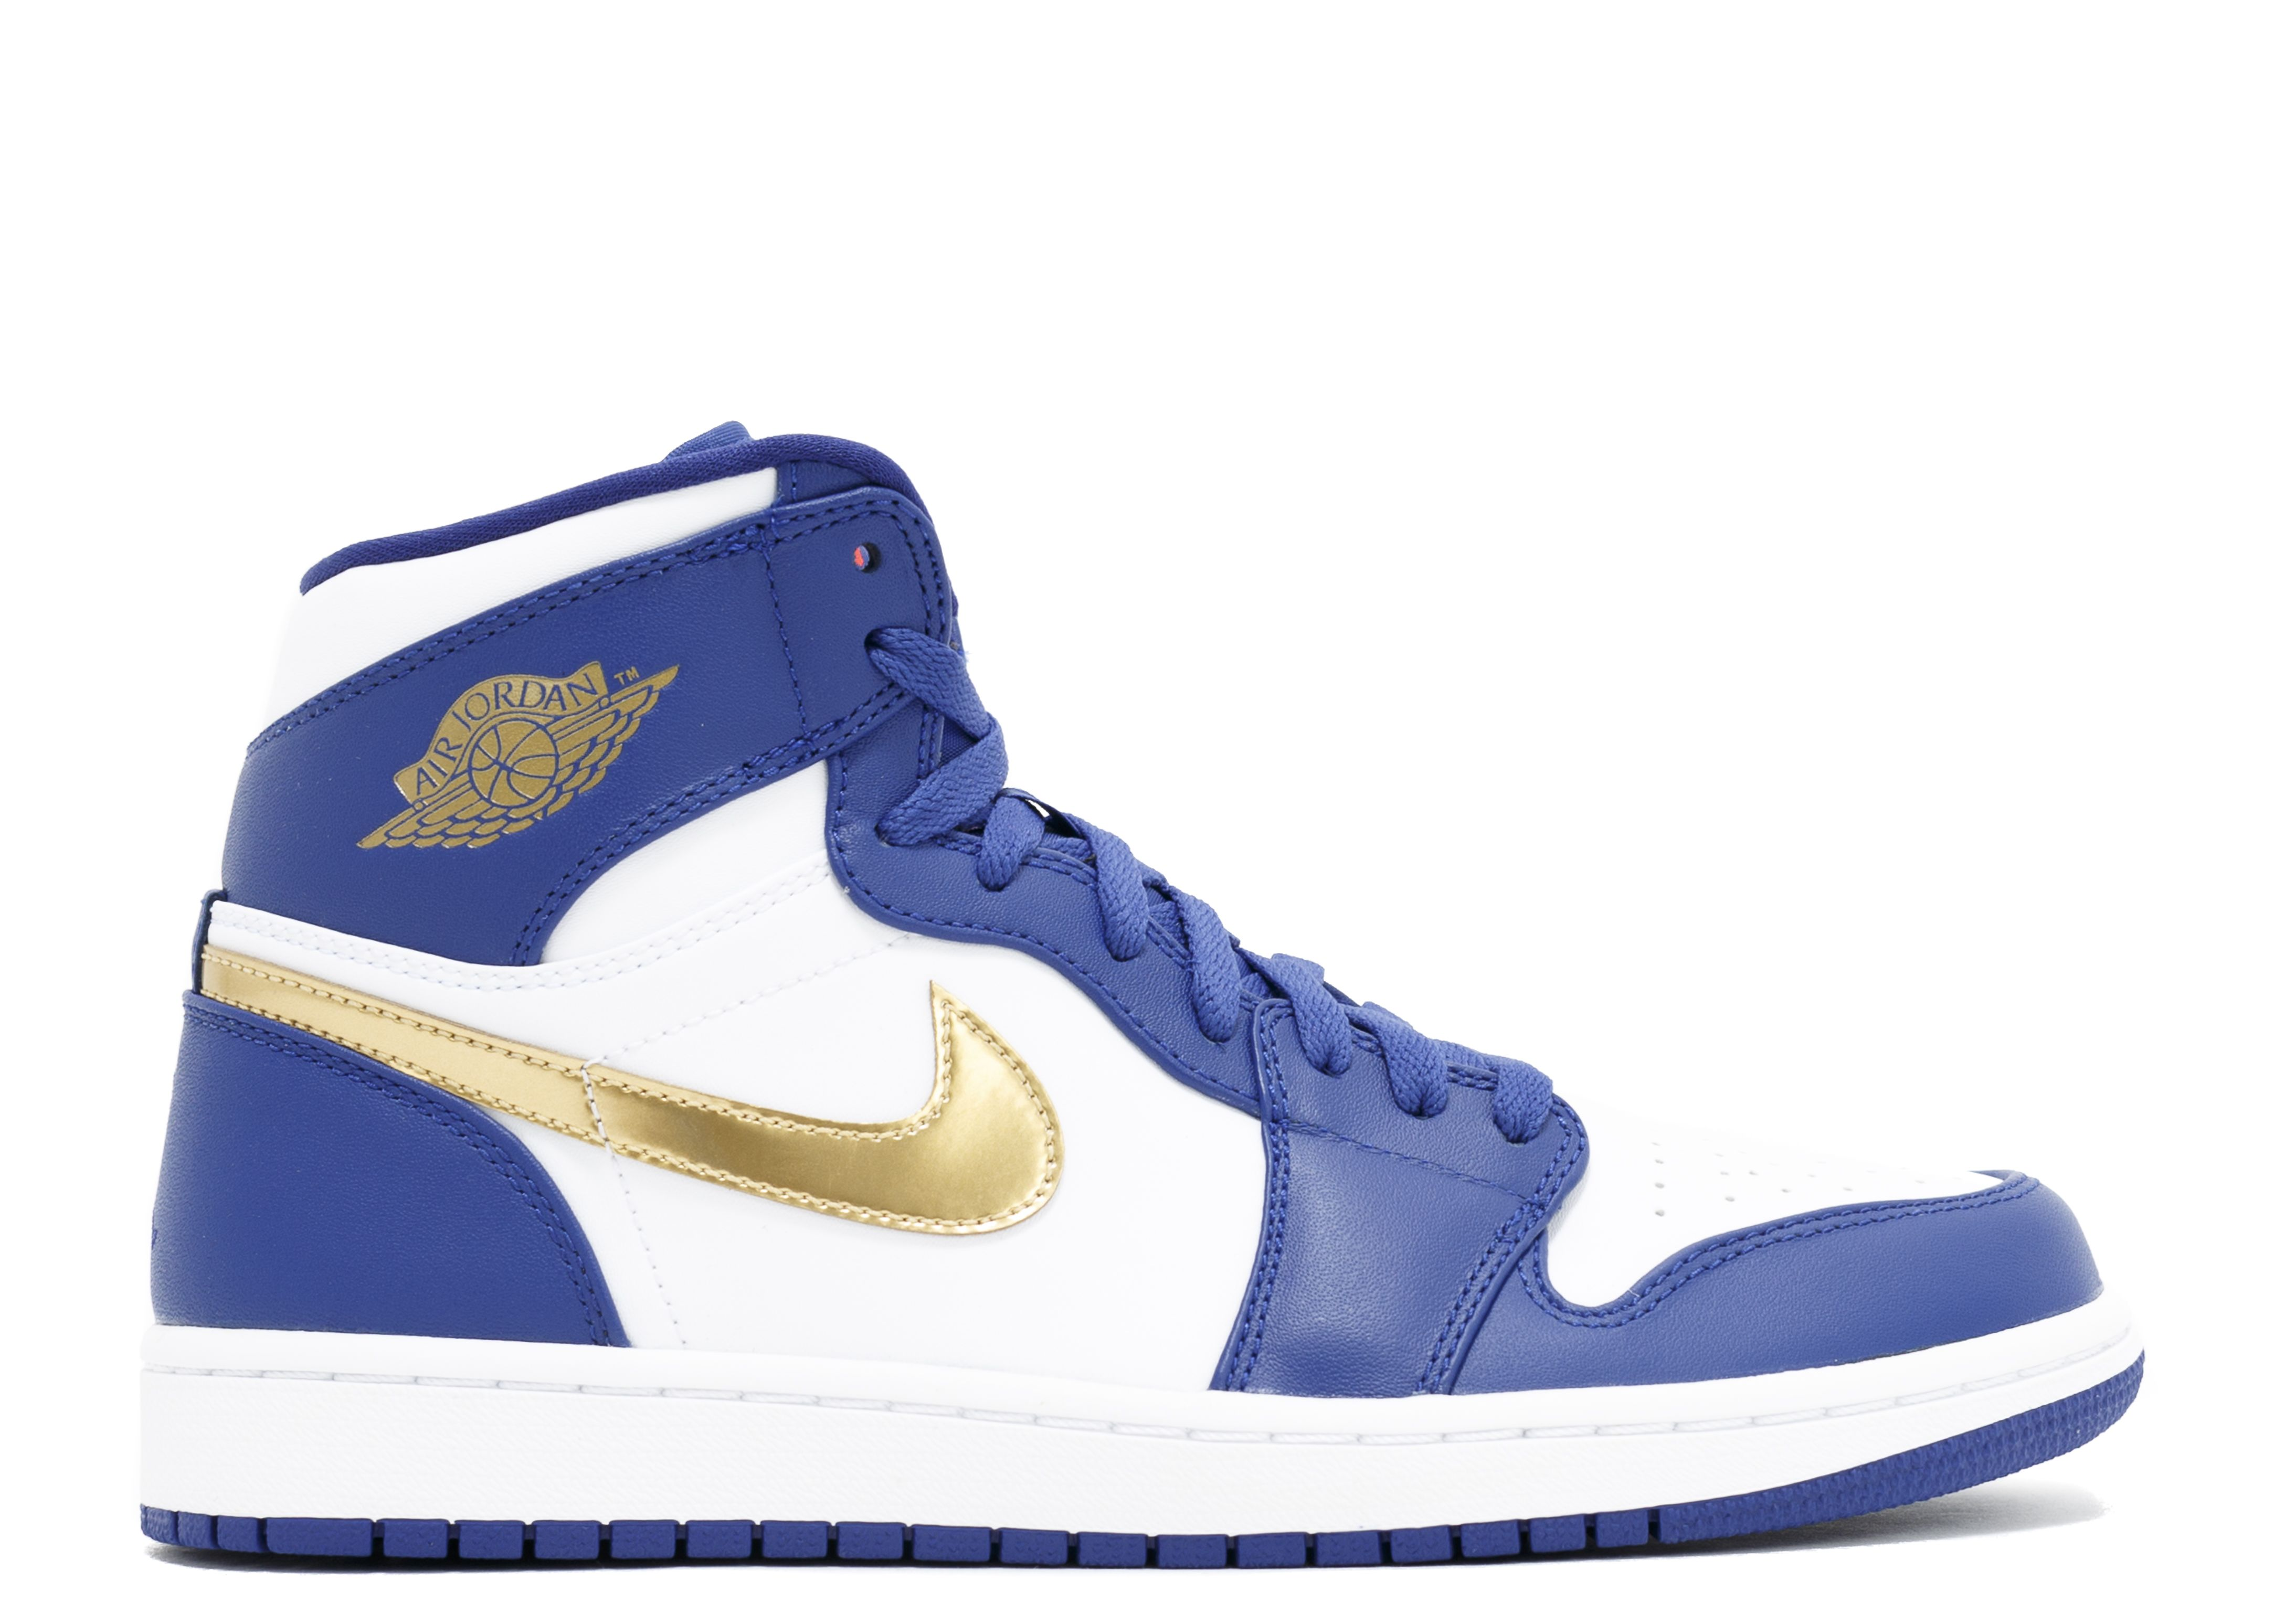 Pin by Dominick Pallo on Jordan 1's | Air jordans, Nike gold